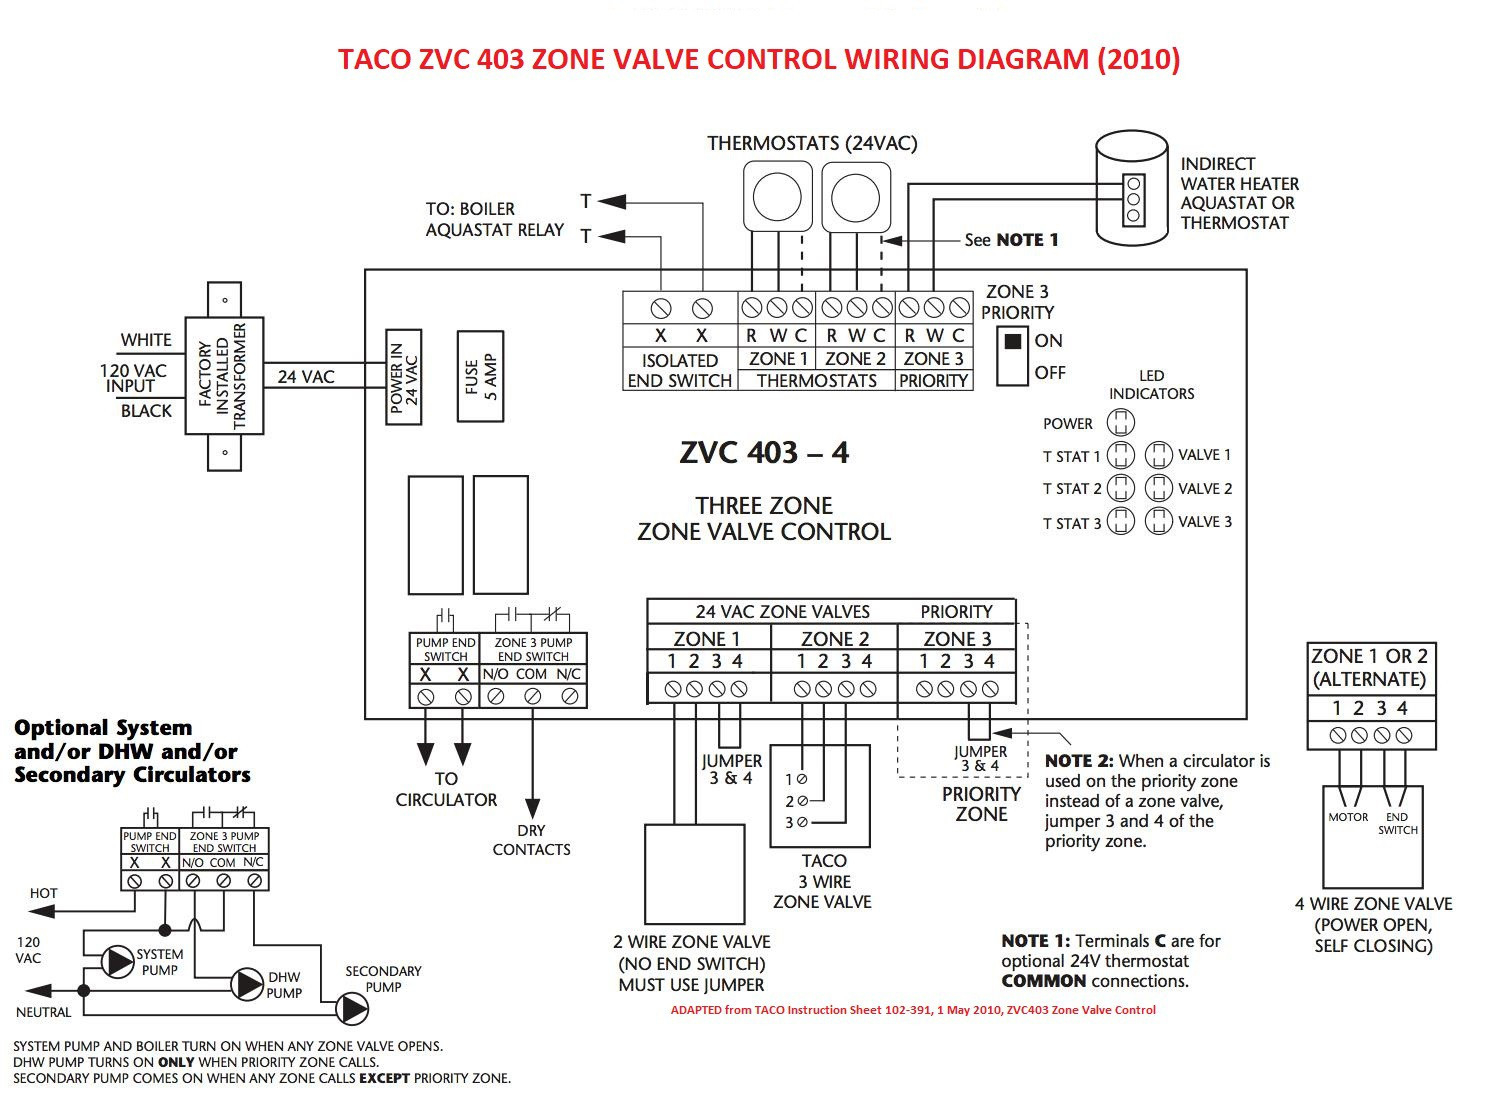 taco circulator pump relay wiring diagrams data schema \u2022 zone valve diagram taco circulator pump relay wiring diagrams wire schematic diagram u2022 rh eragsm co honeywell circulator pump relay heating system circulator pumps